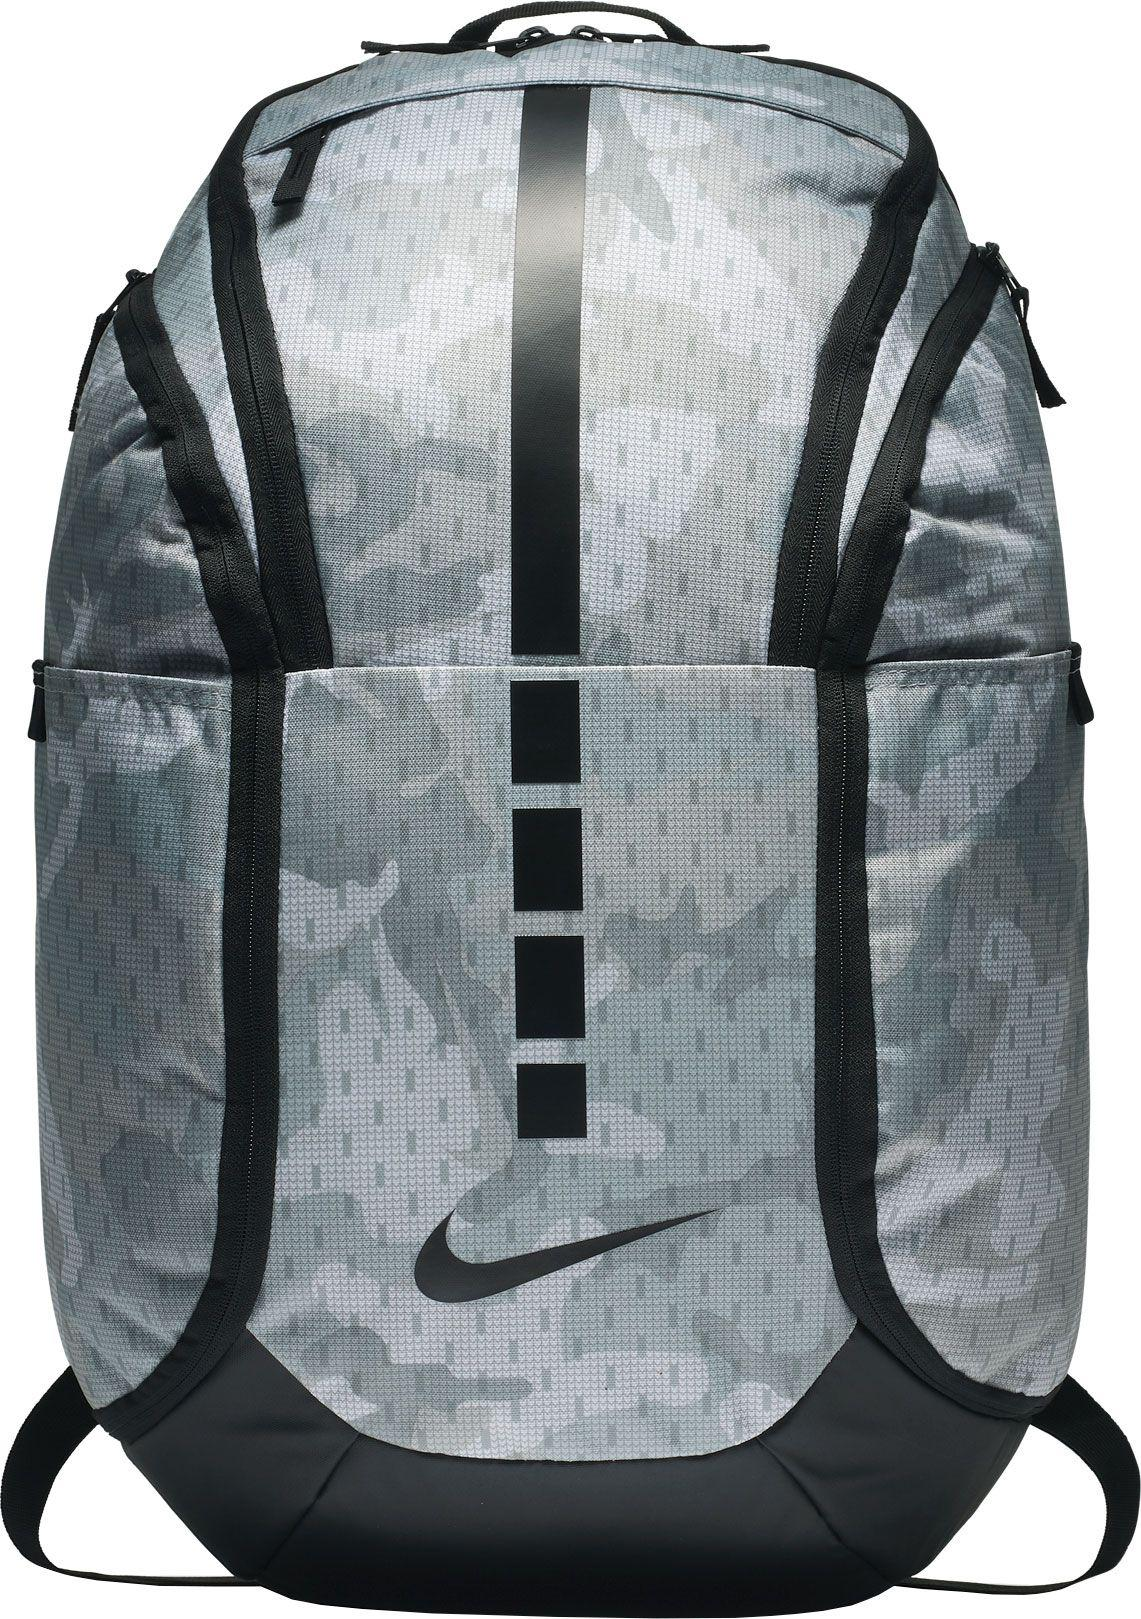 bf71eca696 Lyst - Nike Hoops Elite Pro Camo Basketball Backpack in Gray for Men